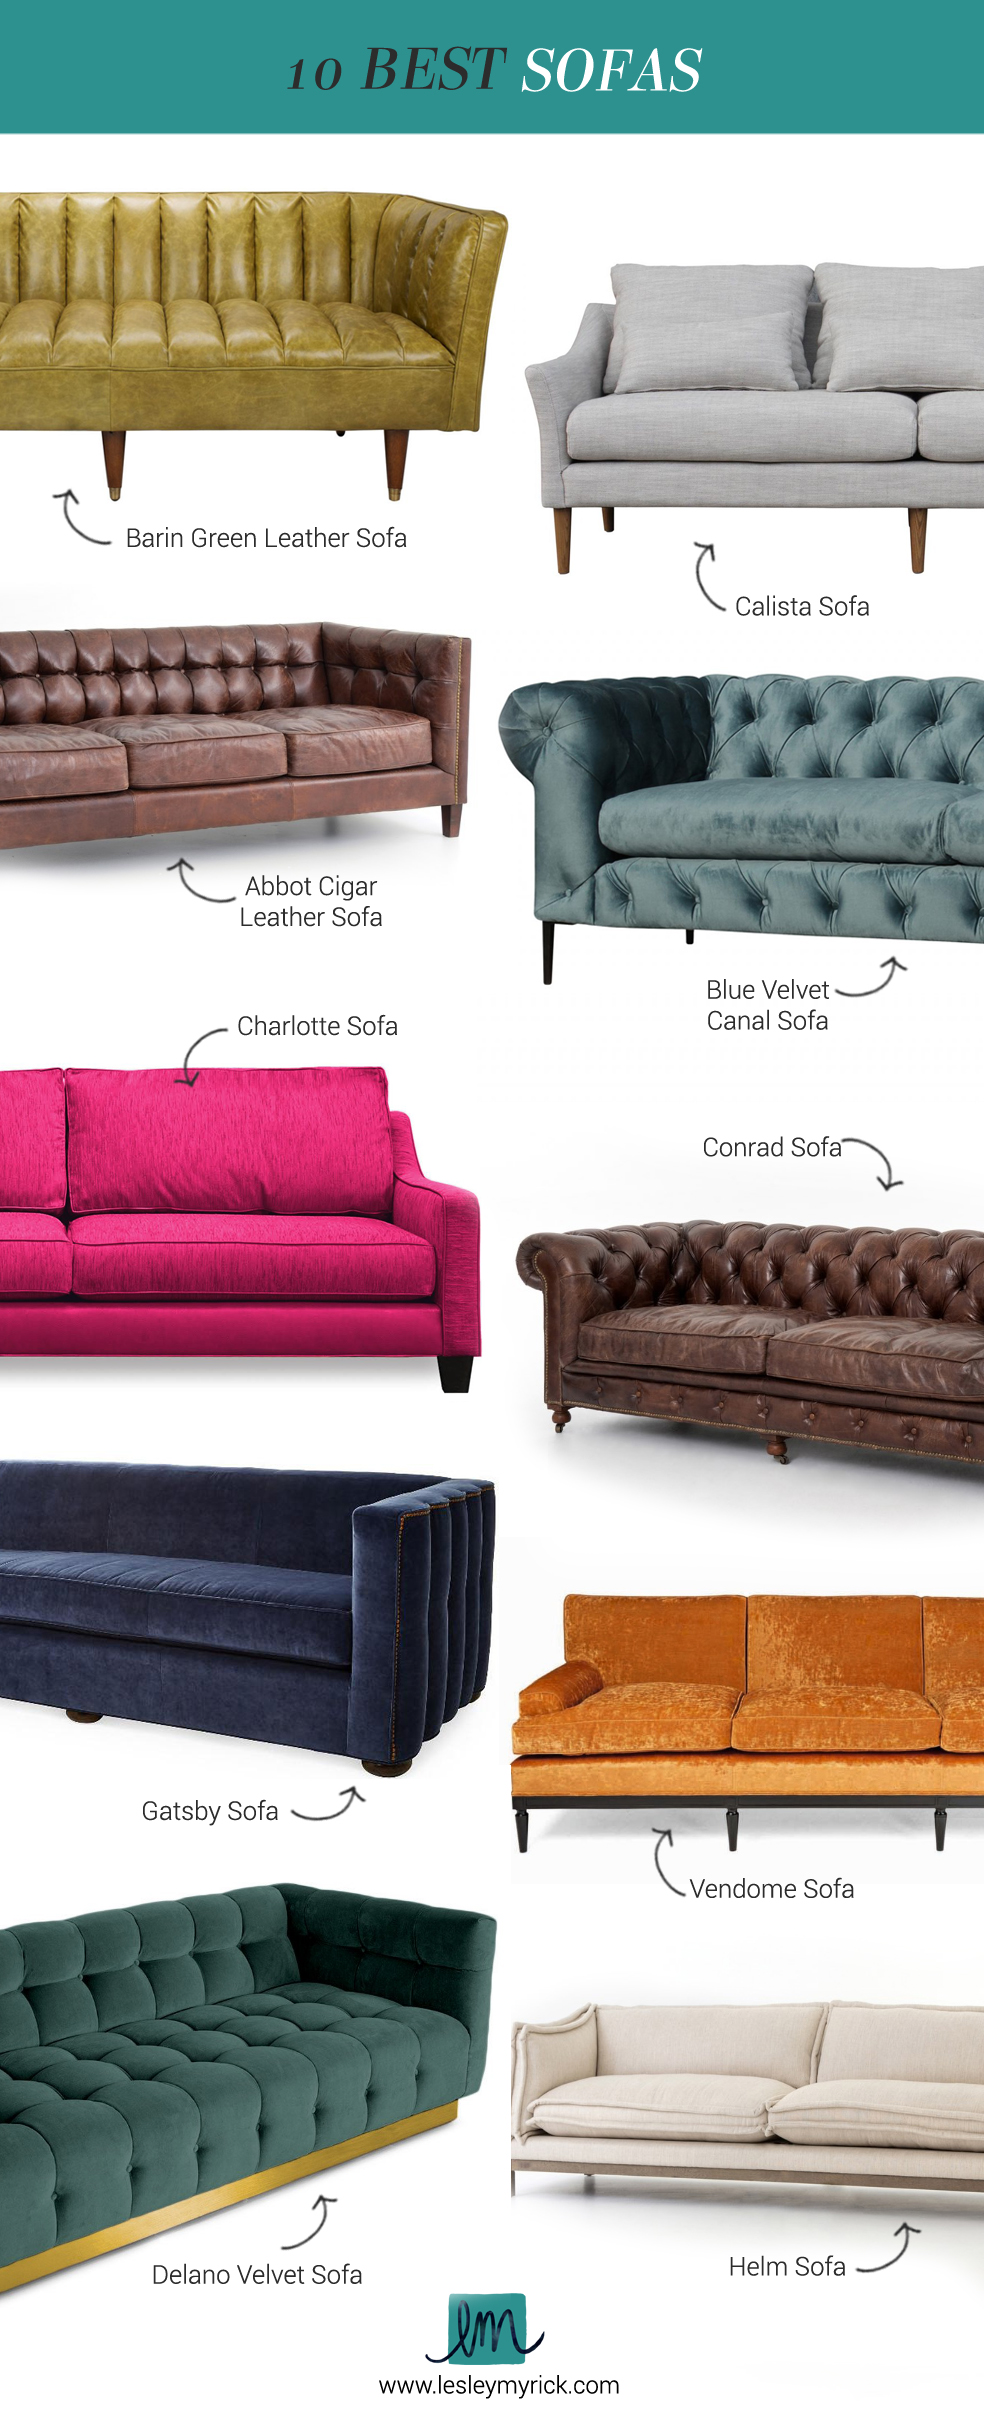 Barin Green Leather Sofa | 2. Calista Sofa | 3. Abbot Cigar Leather Sofa |  4. Blue Velvet Canal Sofa | 5. Charlotte Sofa | 6. Conrad Sofa | 7.